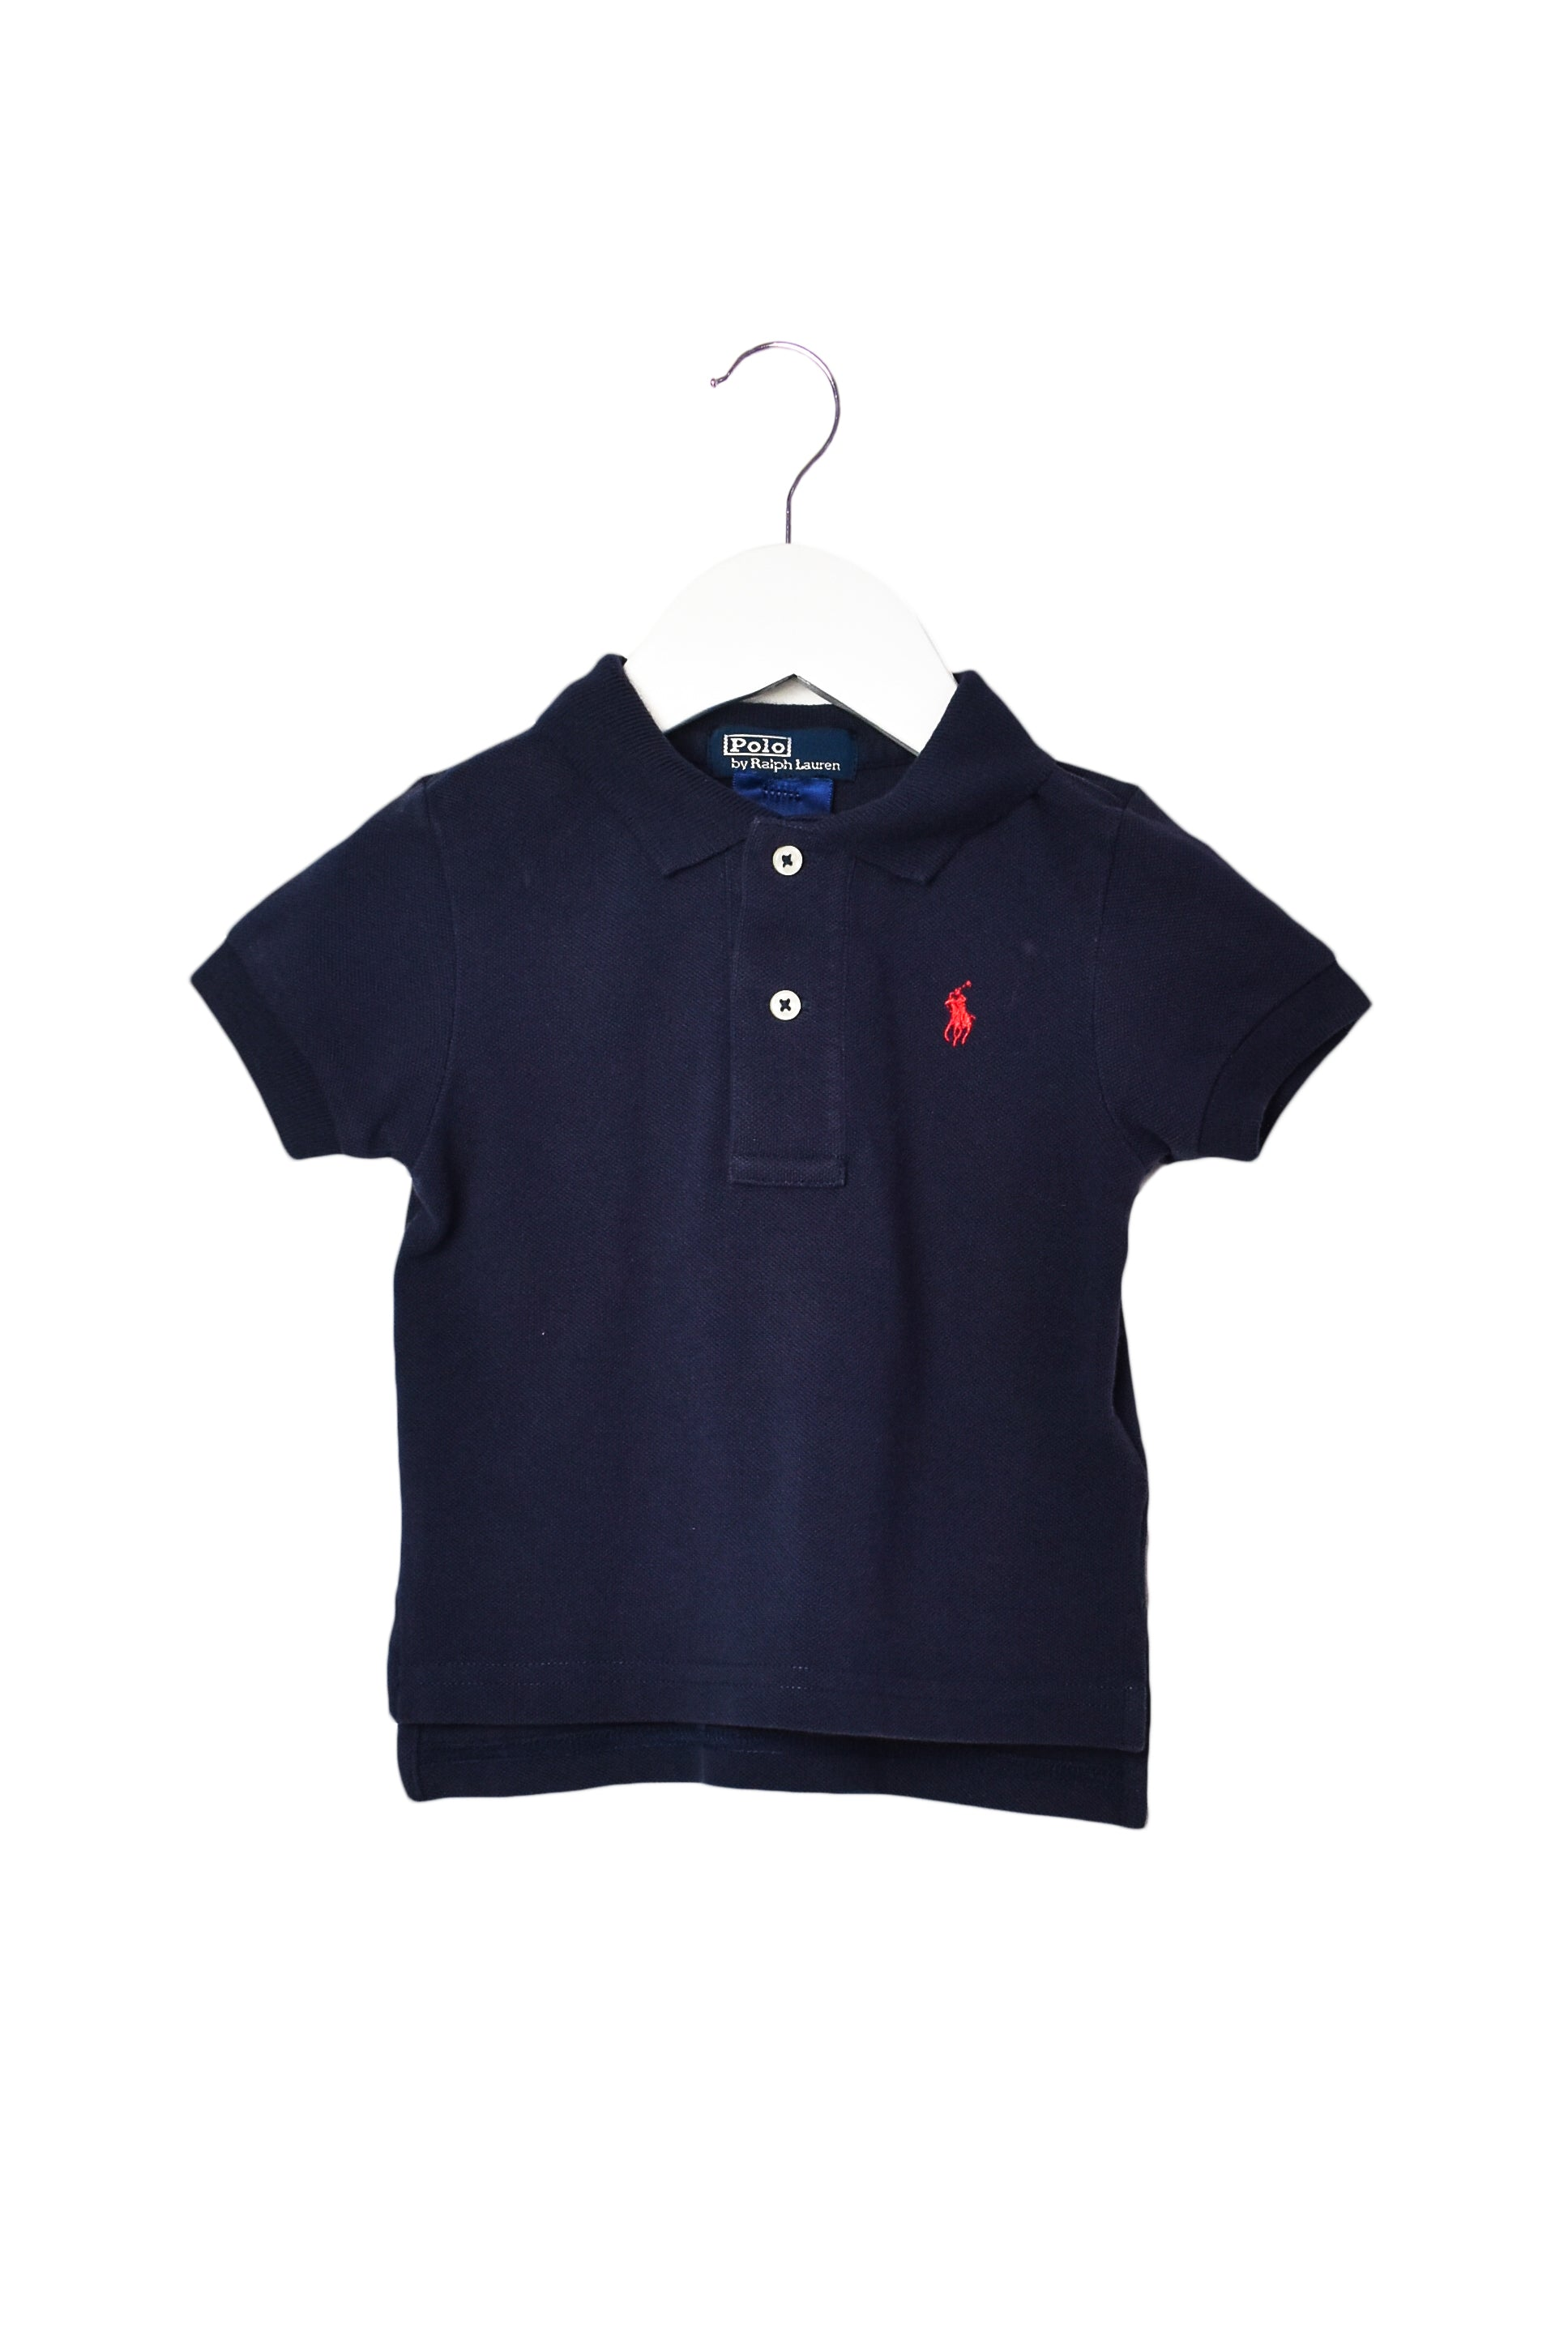 10006410 Polo Ralph Lauren Baby~Polo 9M at Retykle